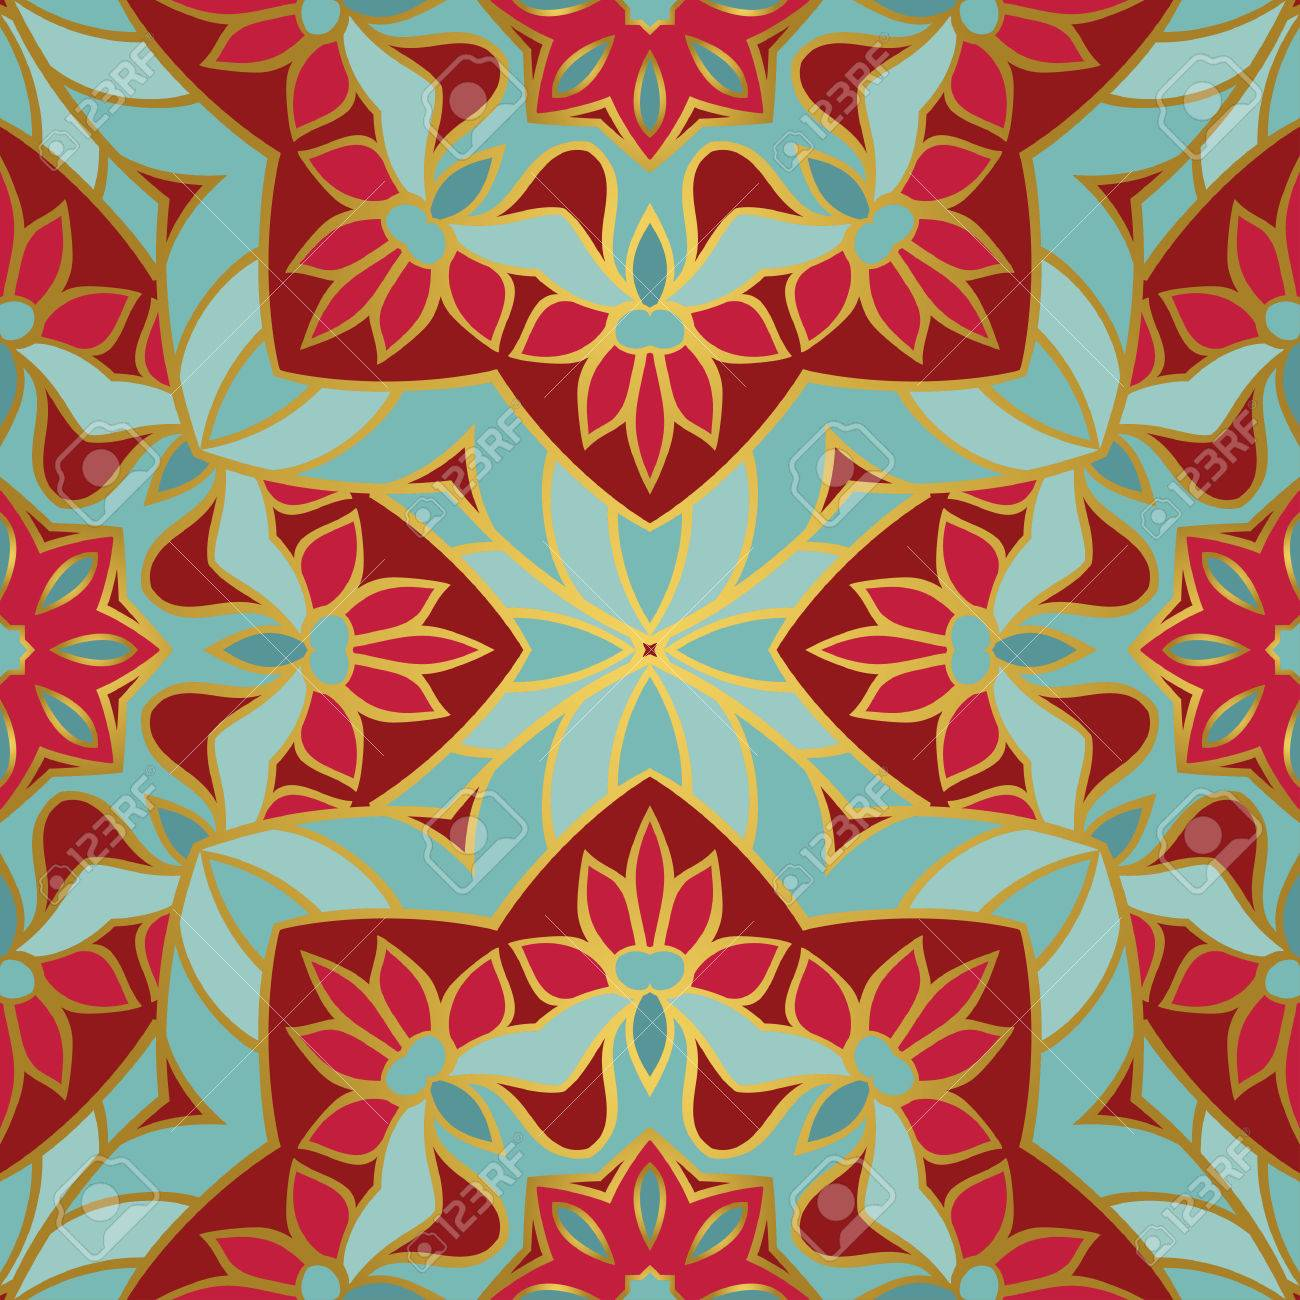 b24398257e77 Vector eastern background. Oriental ethnic ornament. Template for textile